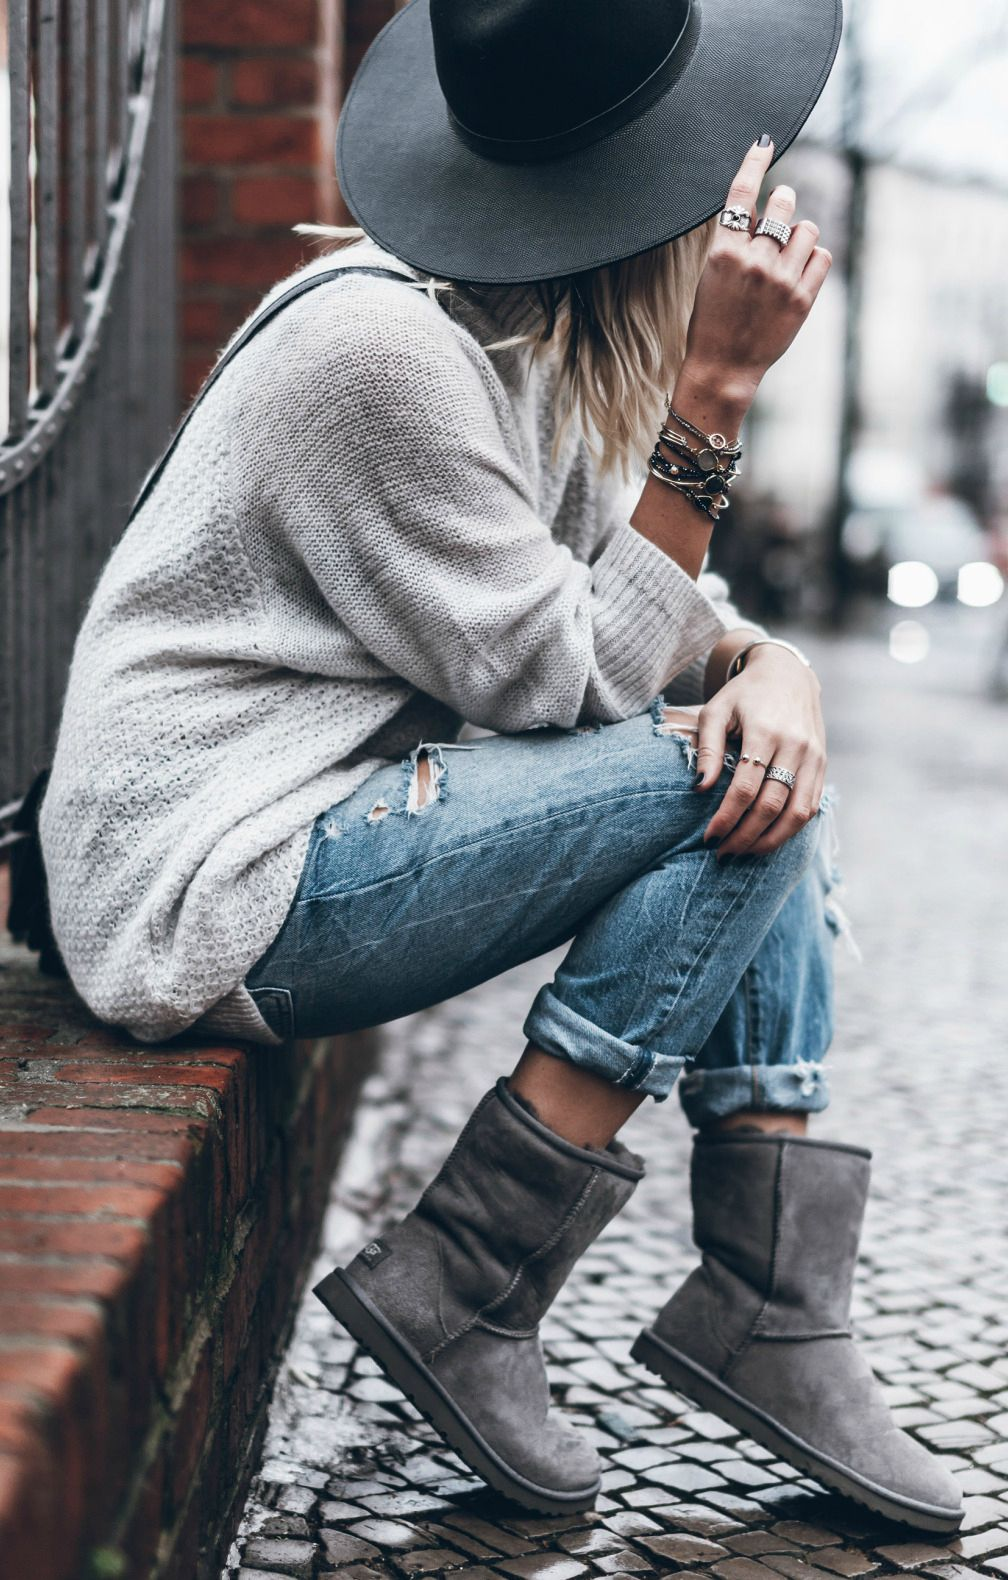 0bd745715a Jacqueline Mikuta+ the Ugg trend + classic pair of ankle high boots +  rolled jeans + cable knit sweater + wide brimmed fedora hat + cosy + homely  look + ...